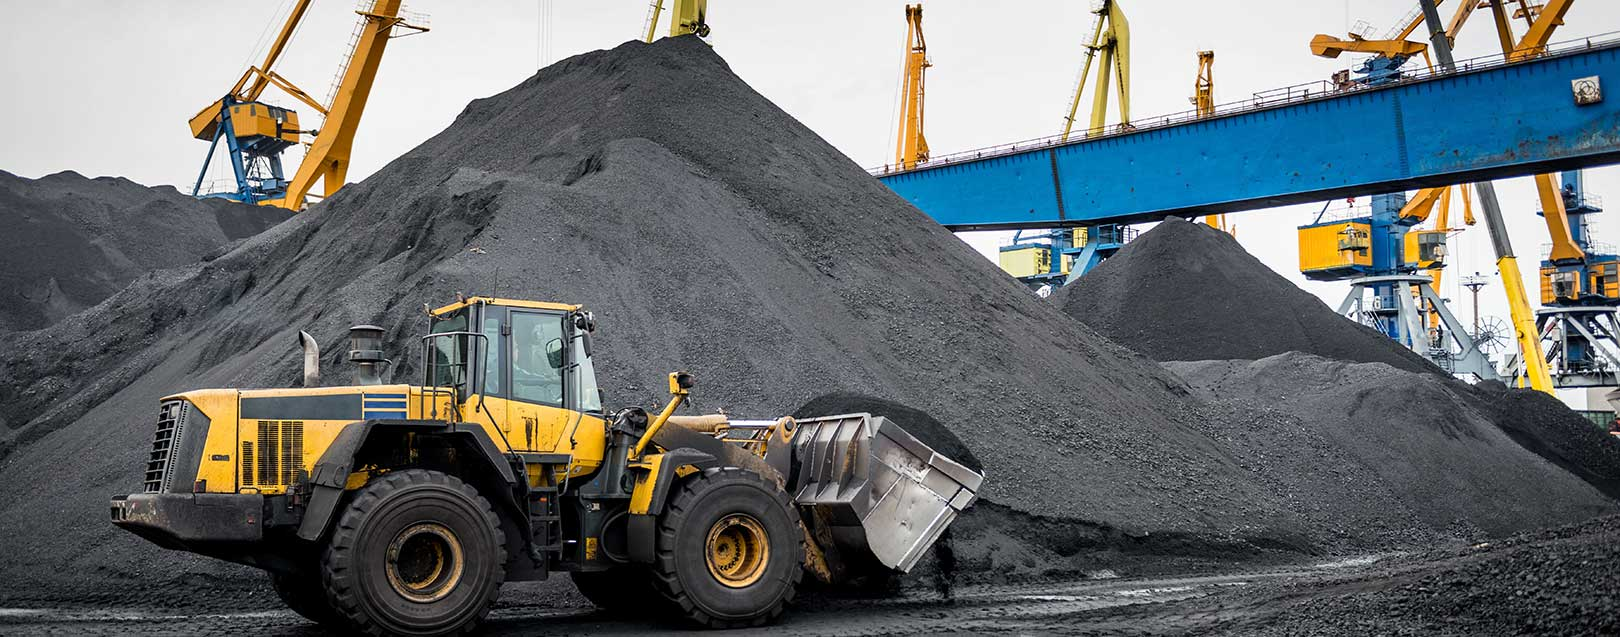 China to ban coal imports from small ports from July 1